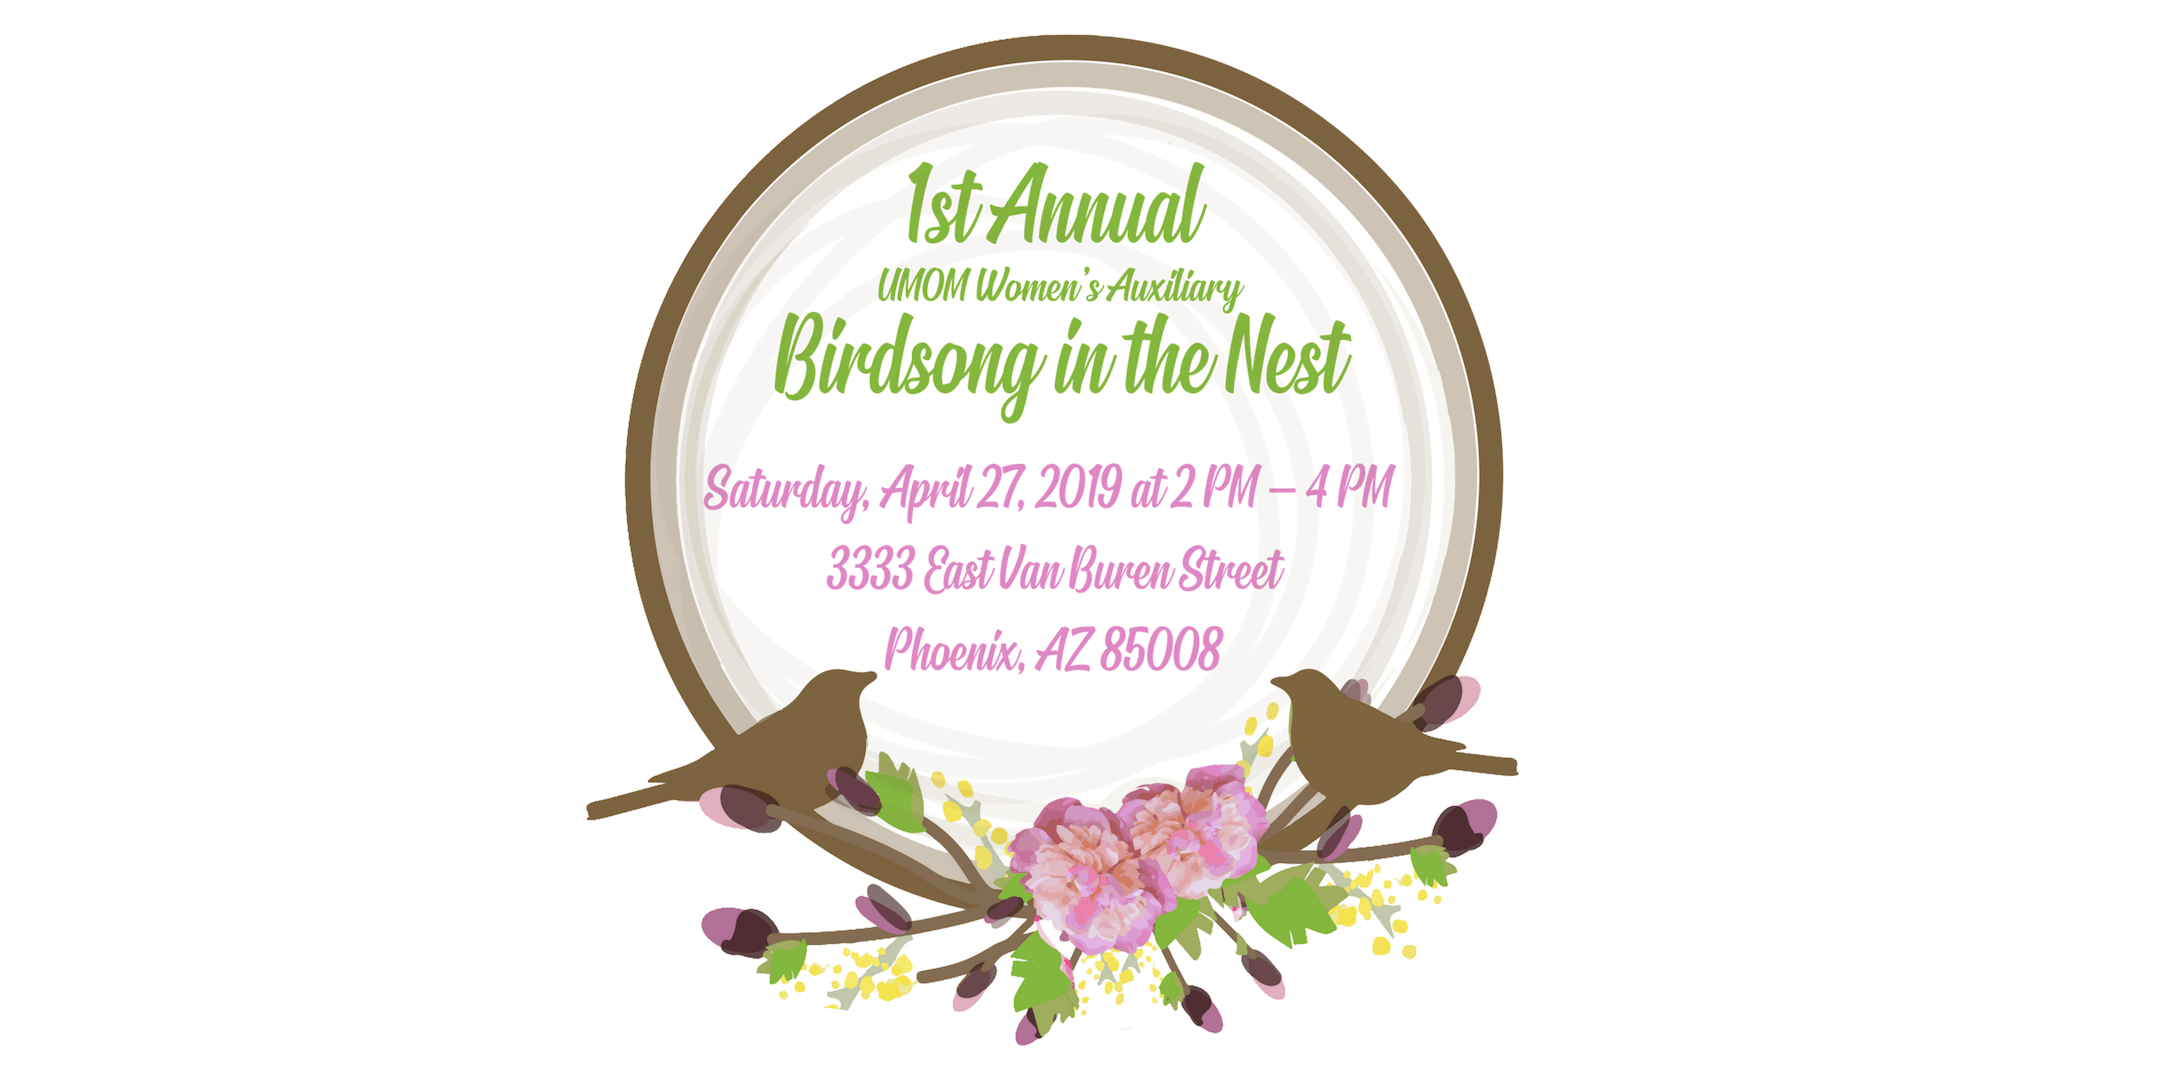 1st Annual Birdsong in the Nest